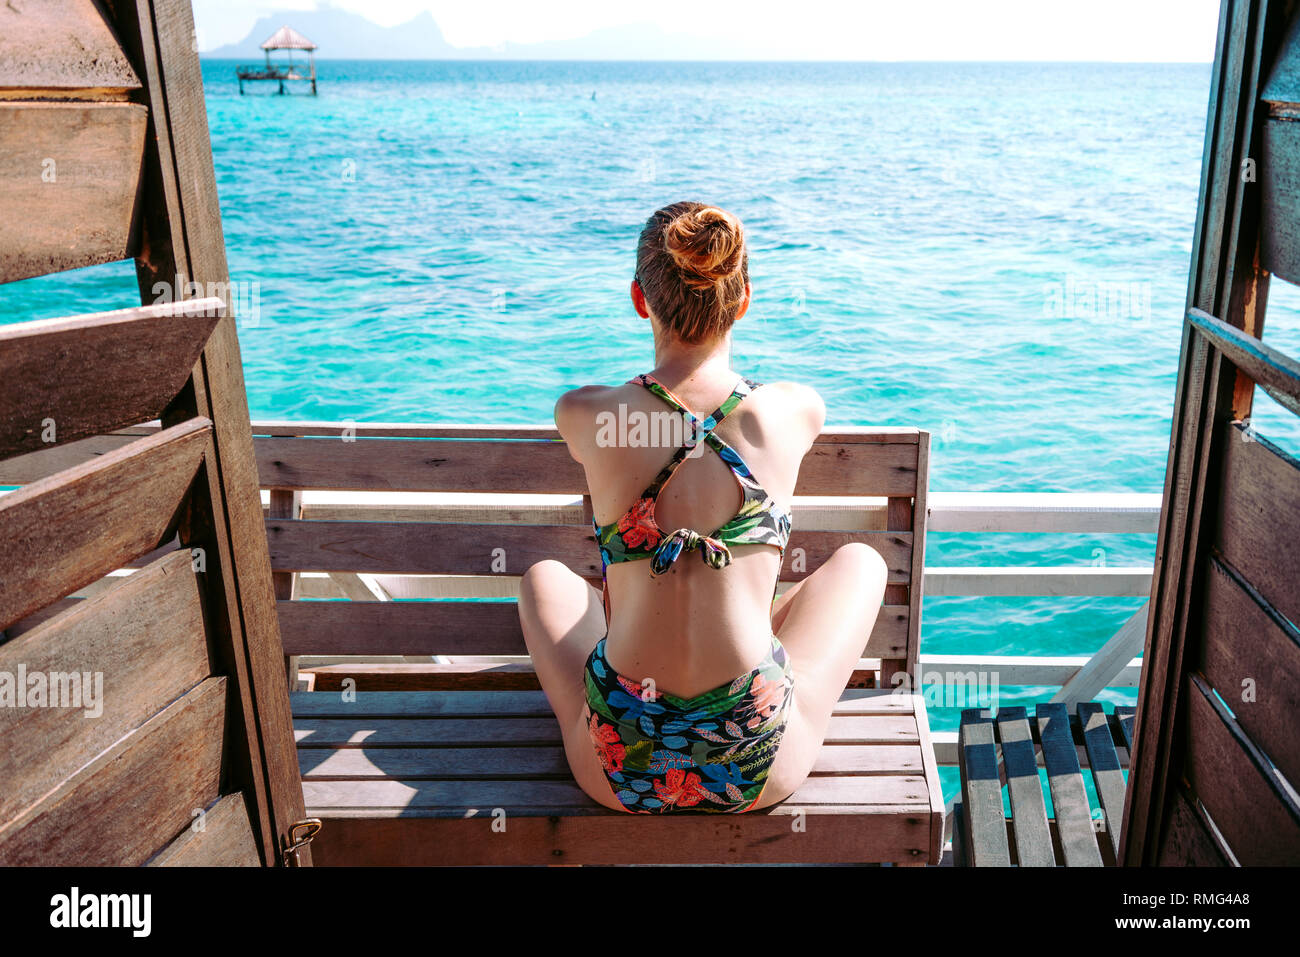 Back view of lady in swimsuit and sunglasses sitting on seat near blue sea in Jamaica - Stock Image